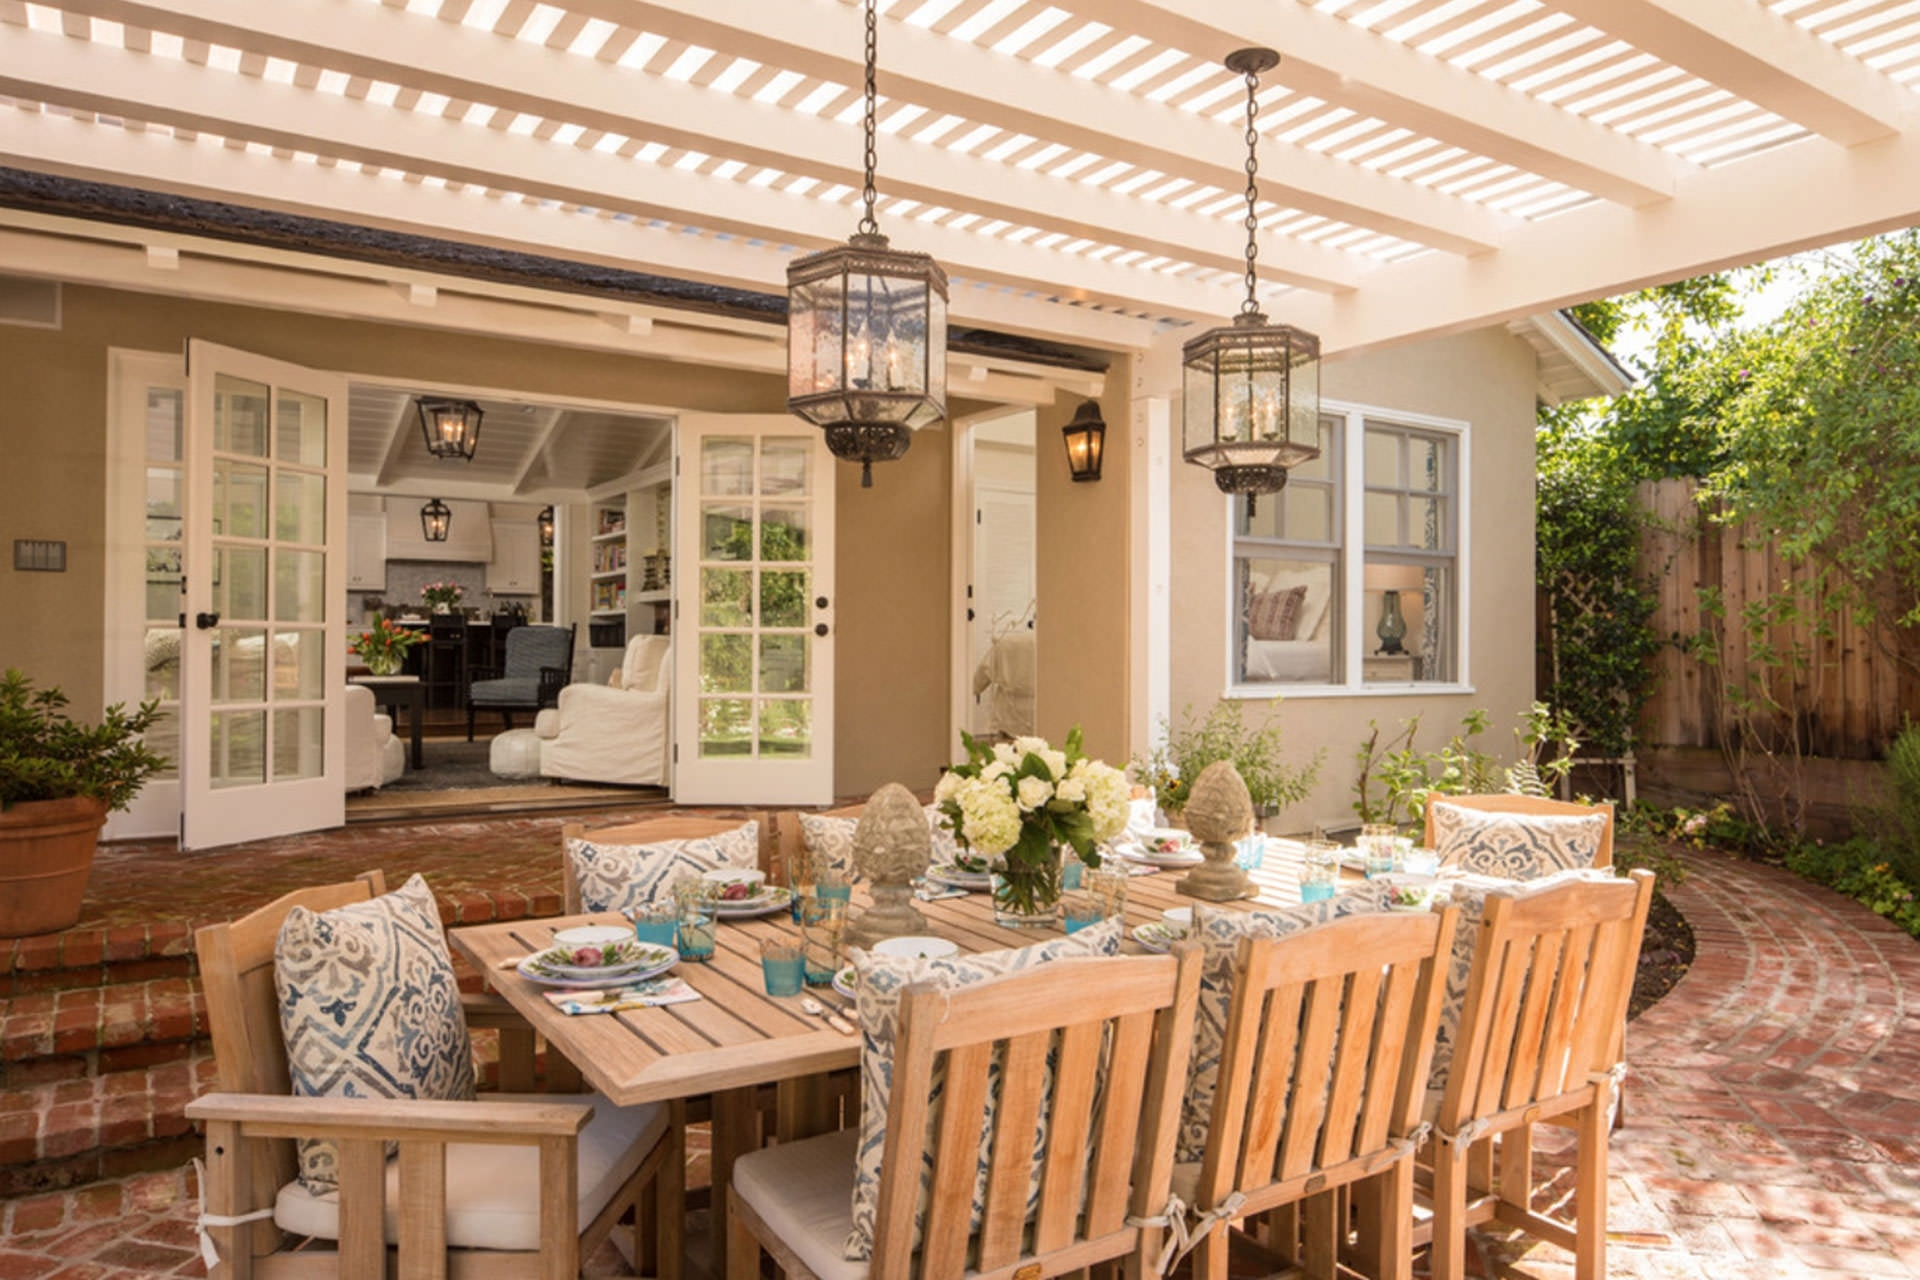 Most Popular Outdoor Dining Lanterns Regarding 33 Neat Design Outdoor Lantern Lighting Ideas Five Pergola To (View 5 of 20)